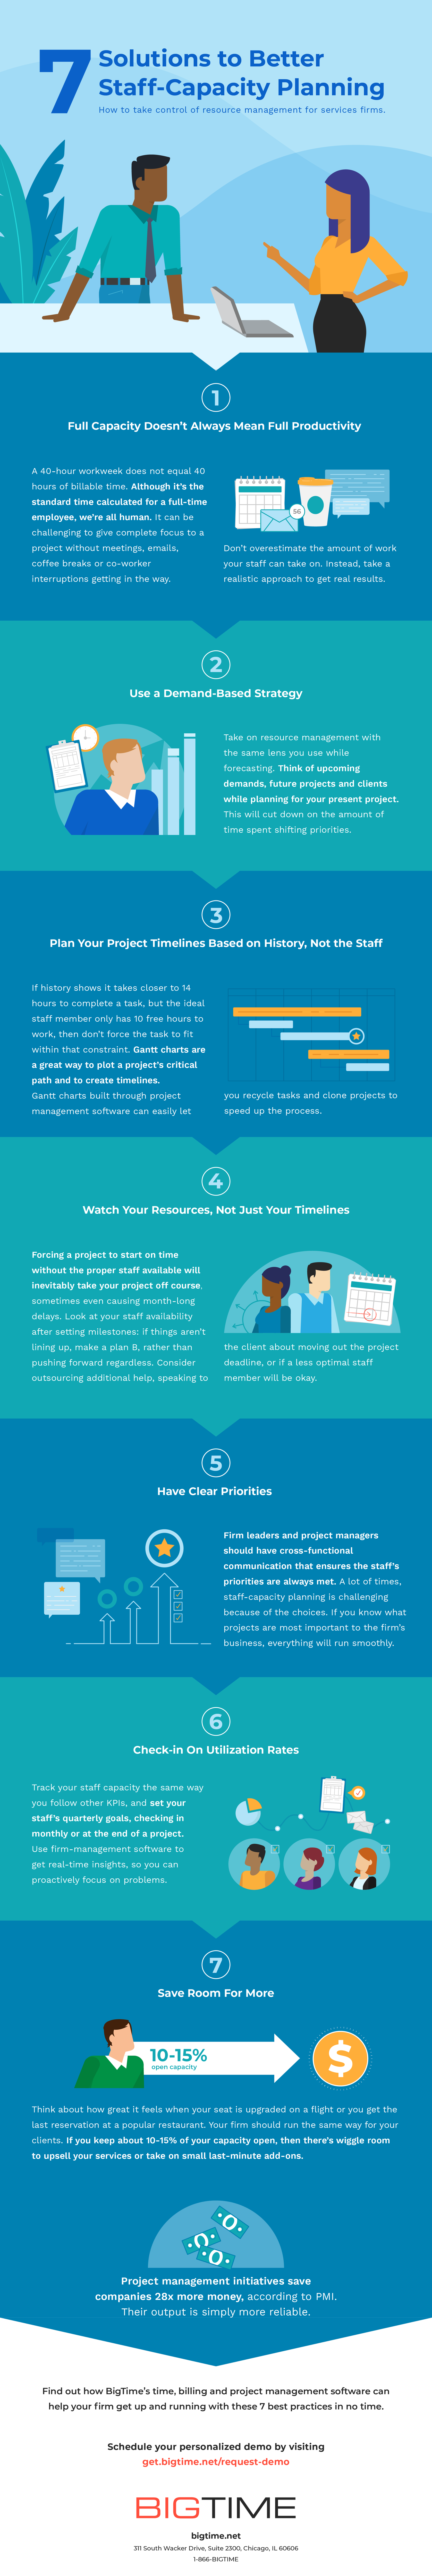 infographic_7-solutions-to-better-staff-capacity-planning